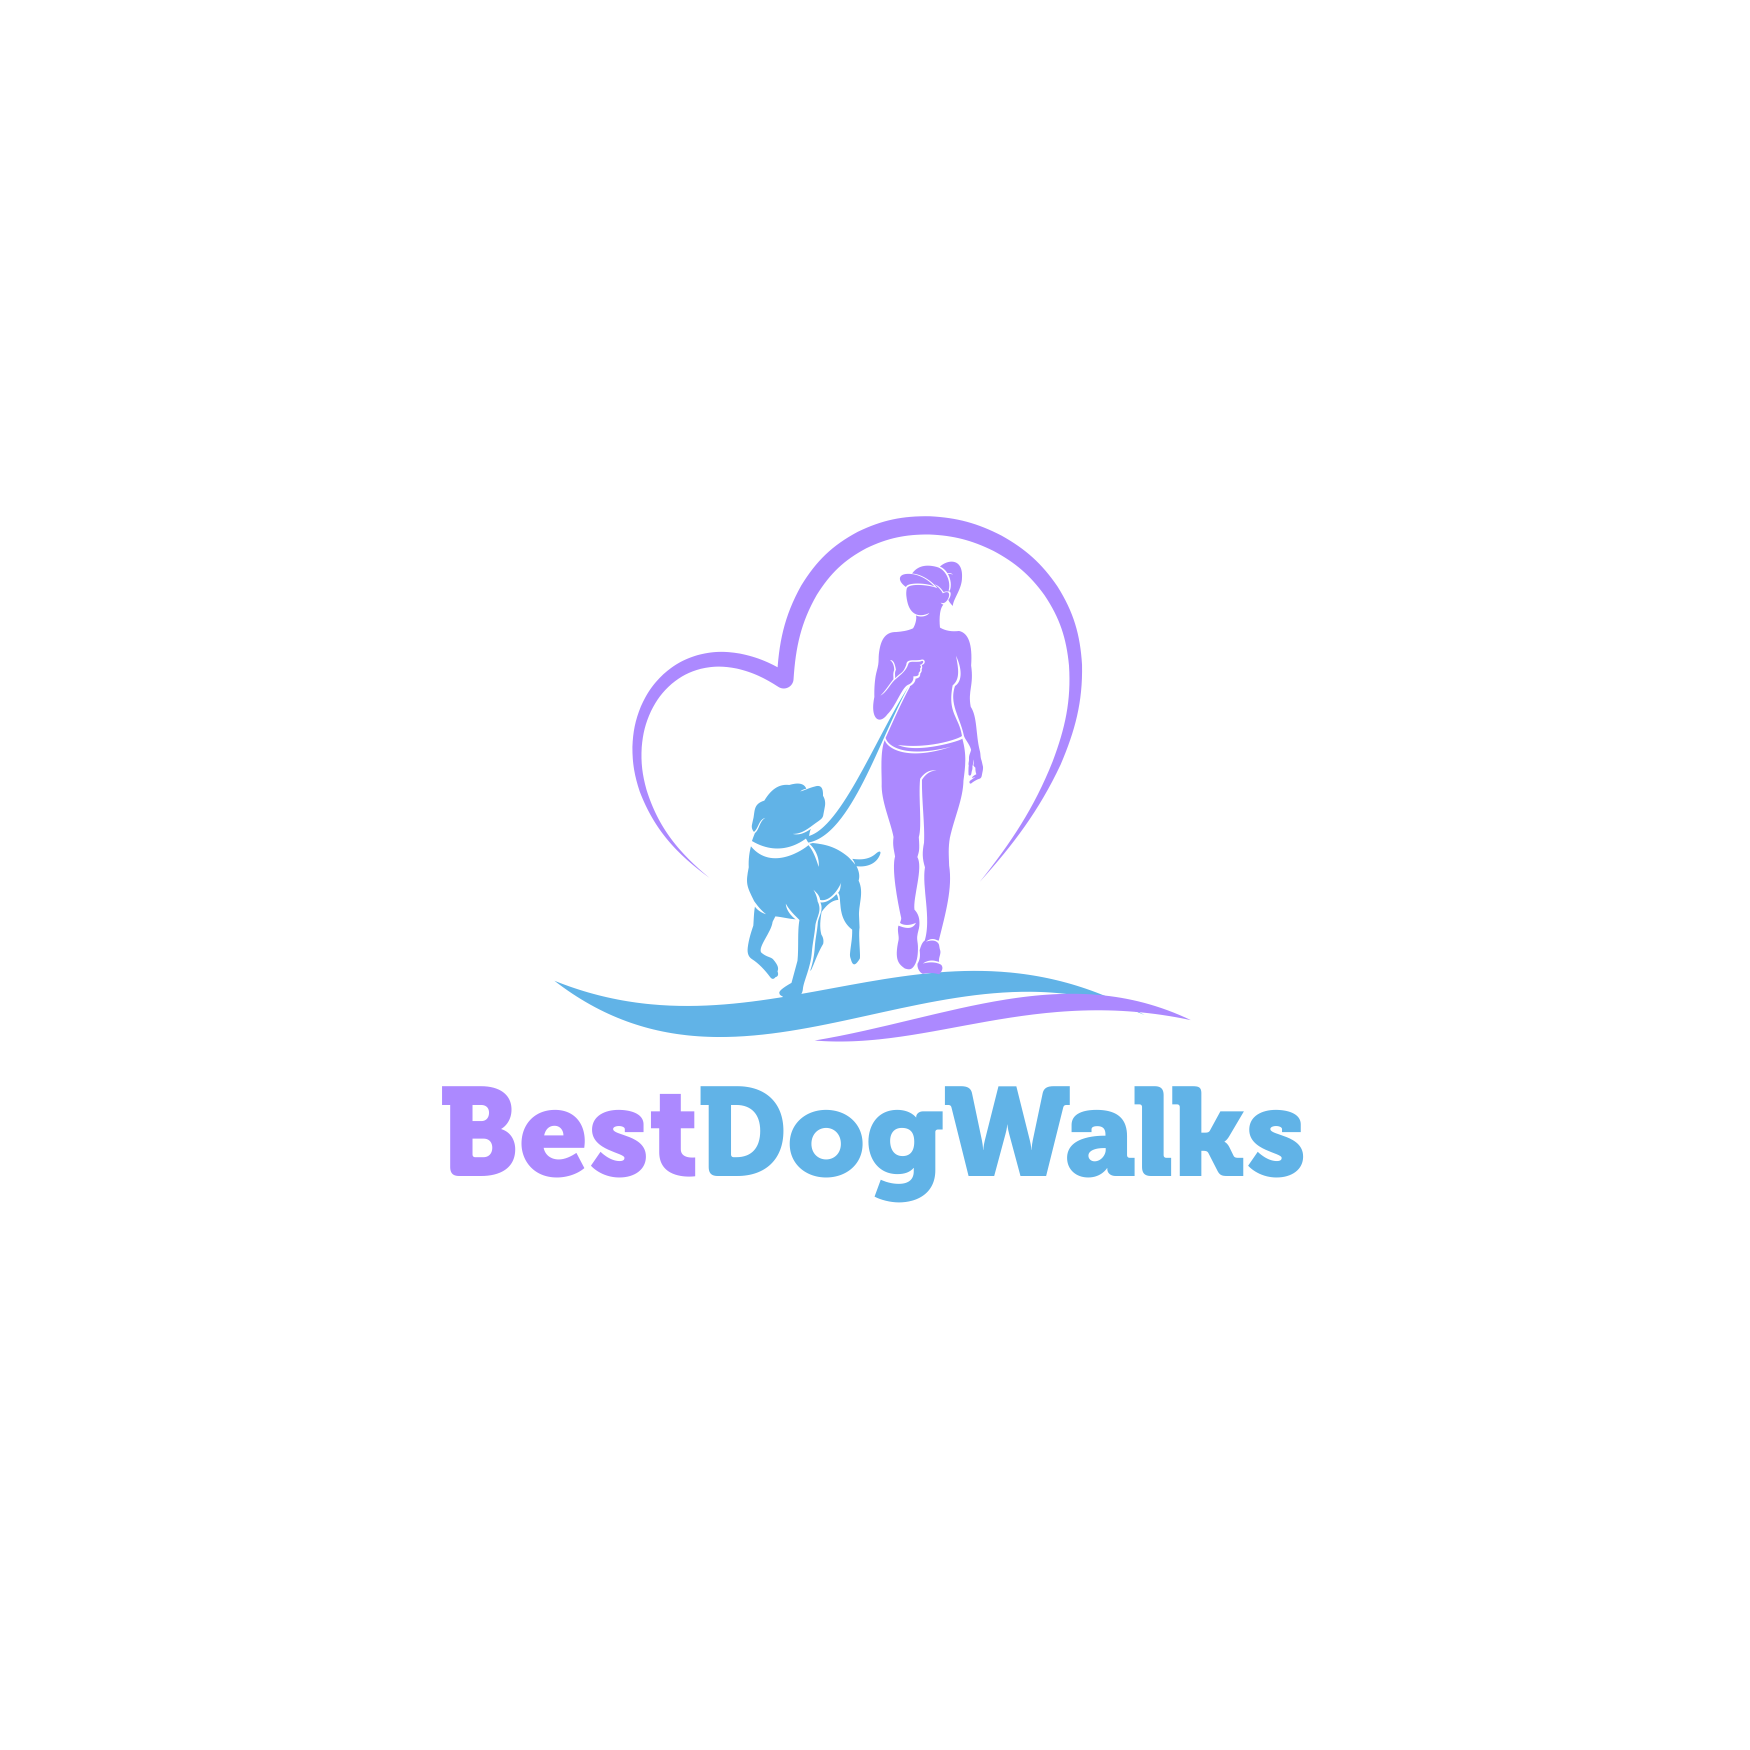 Design an elegant fun logo for a boutique dog walking business